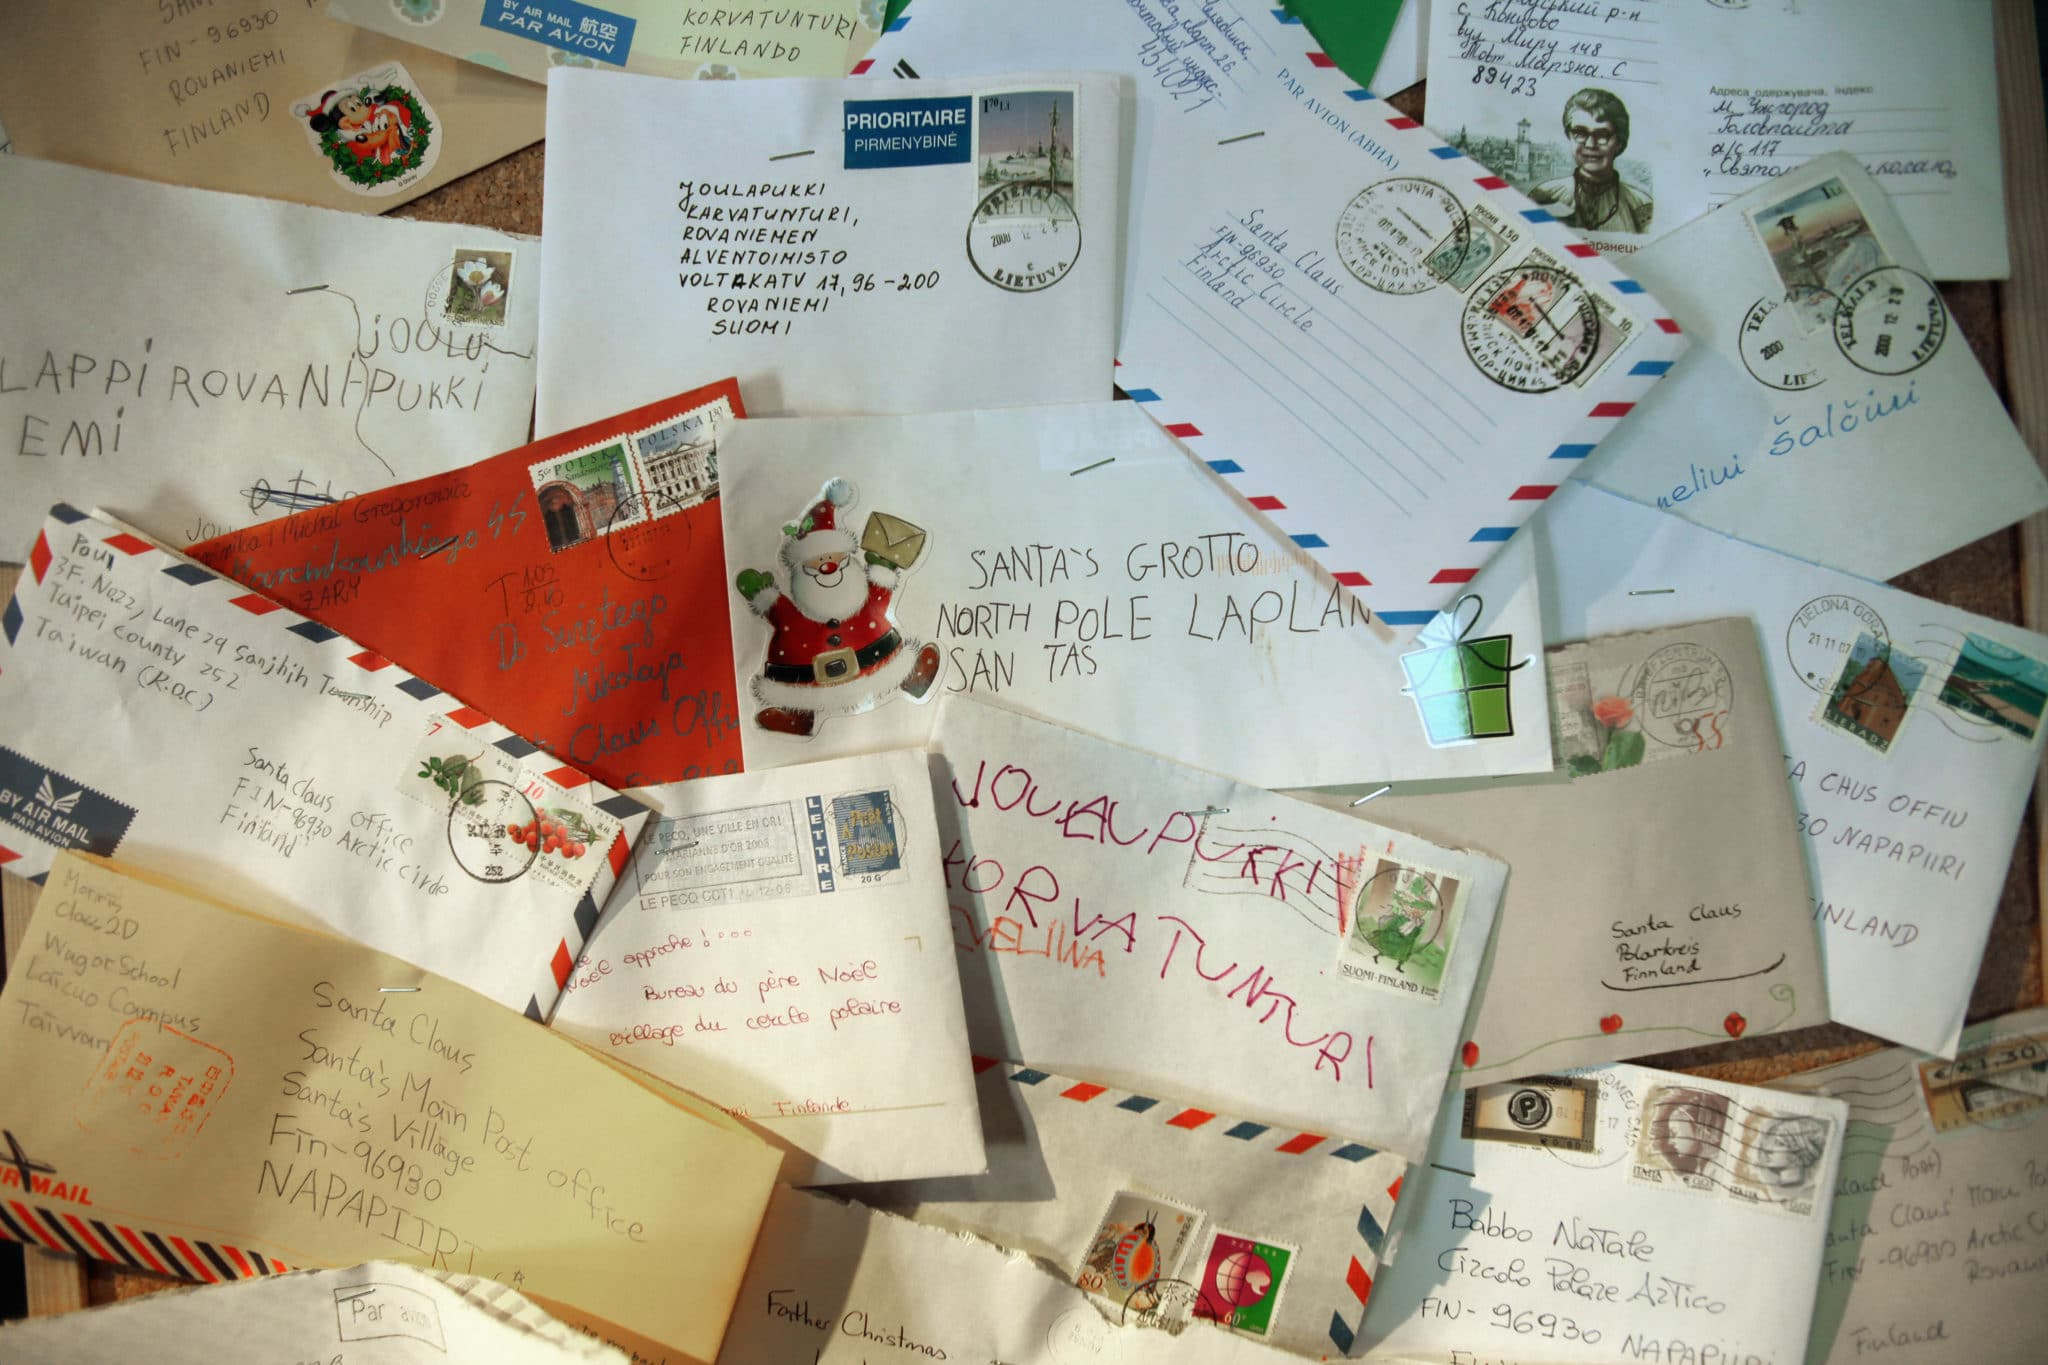 Santa gets thousands of letters each year